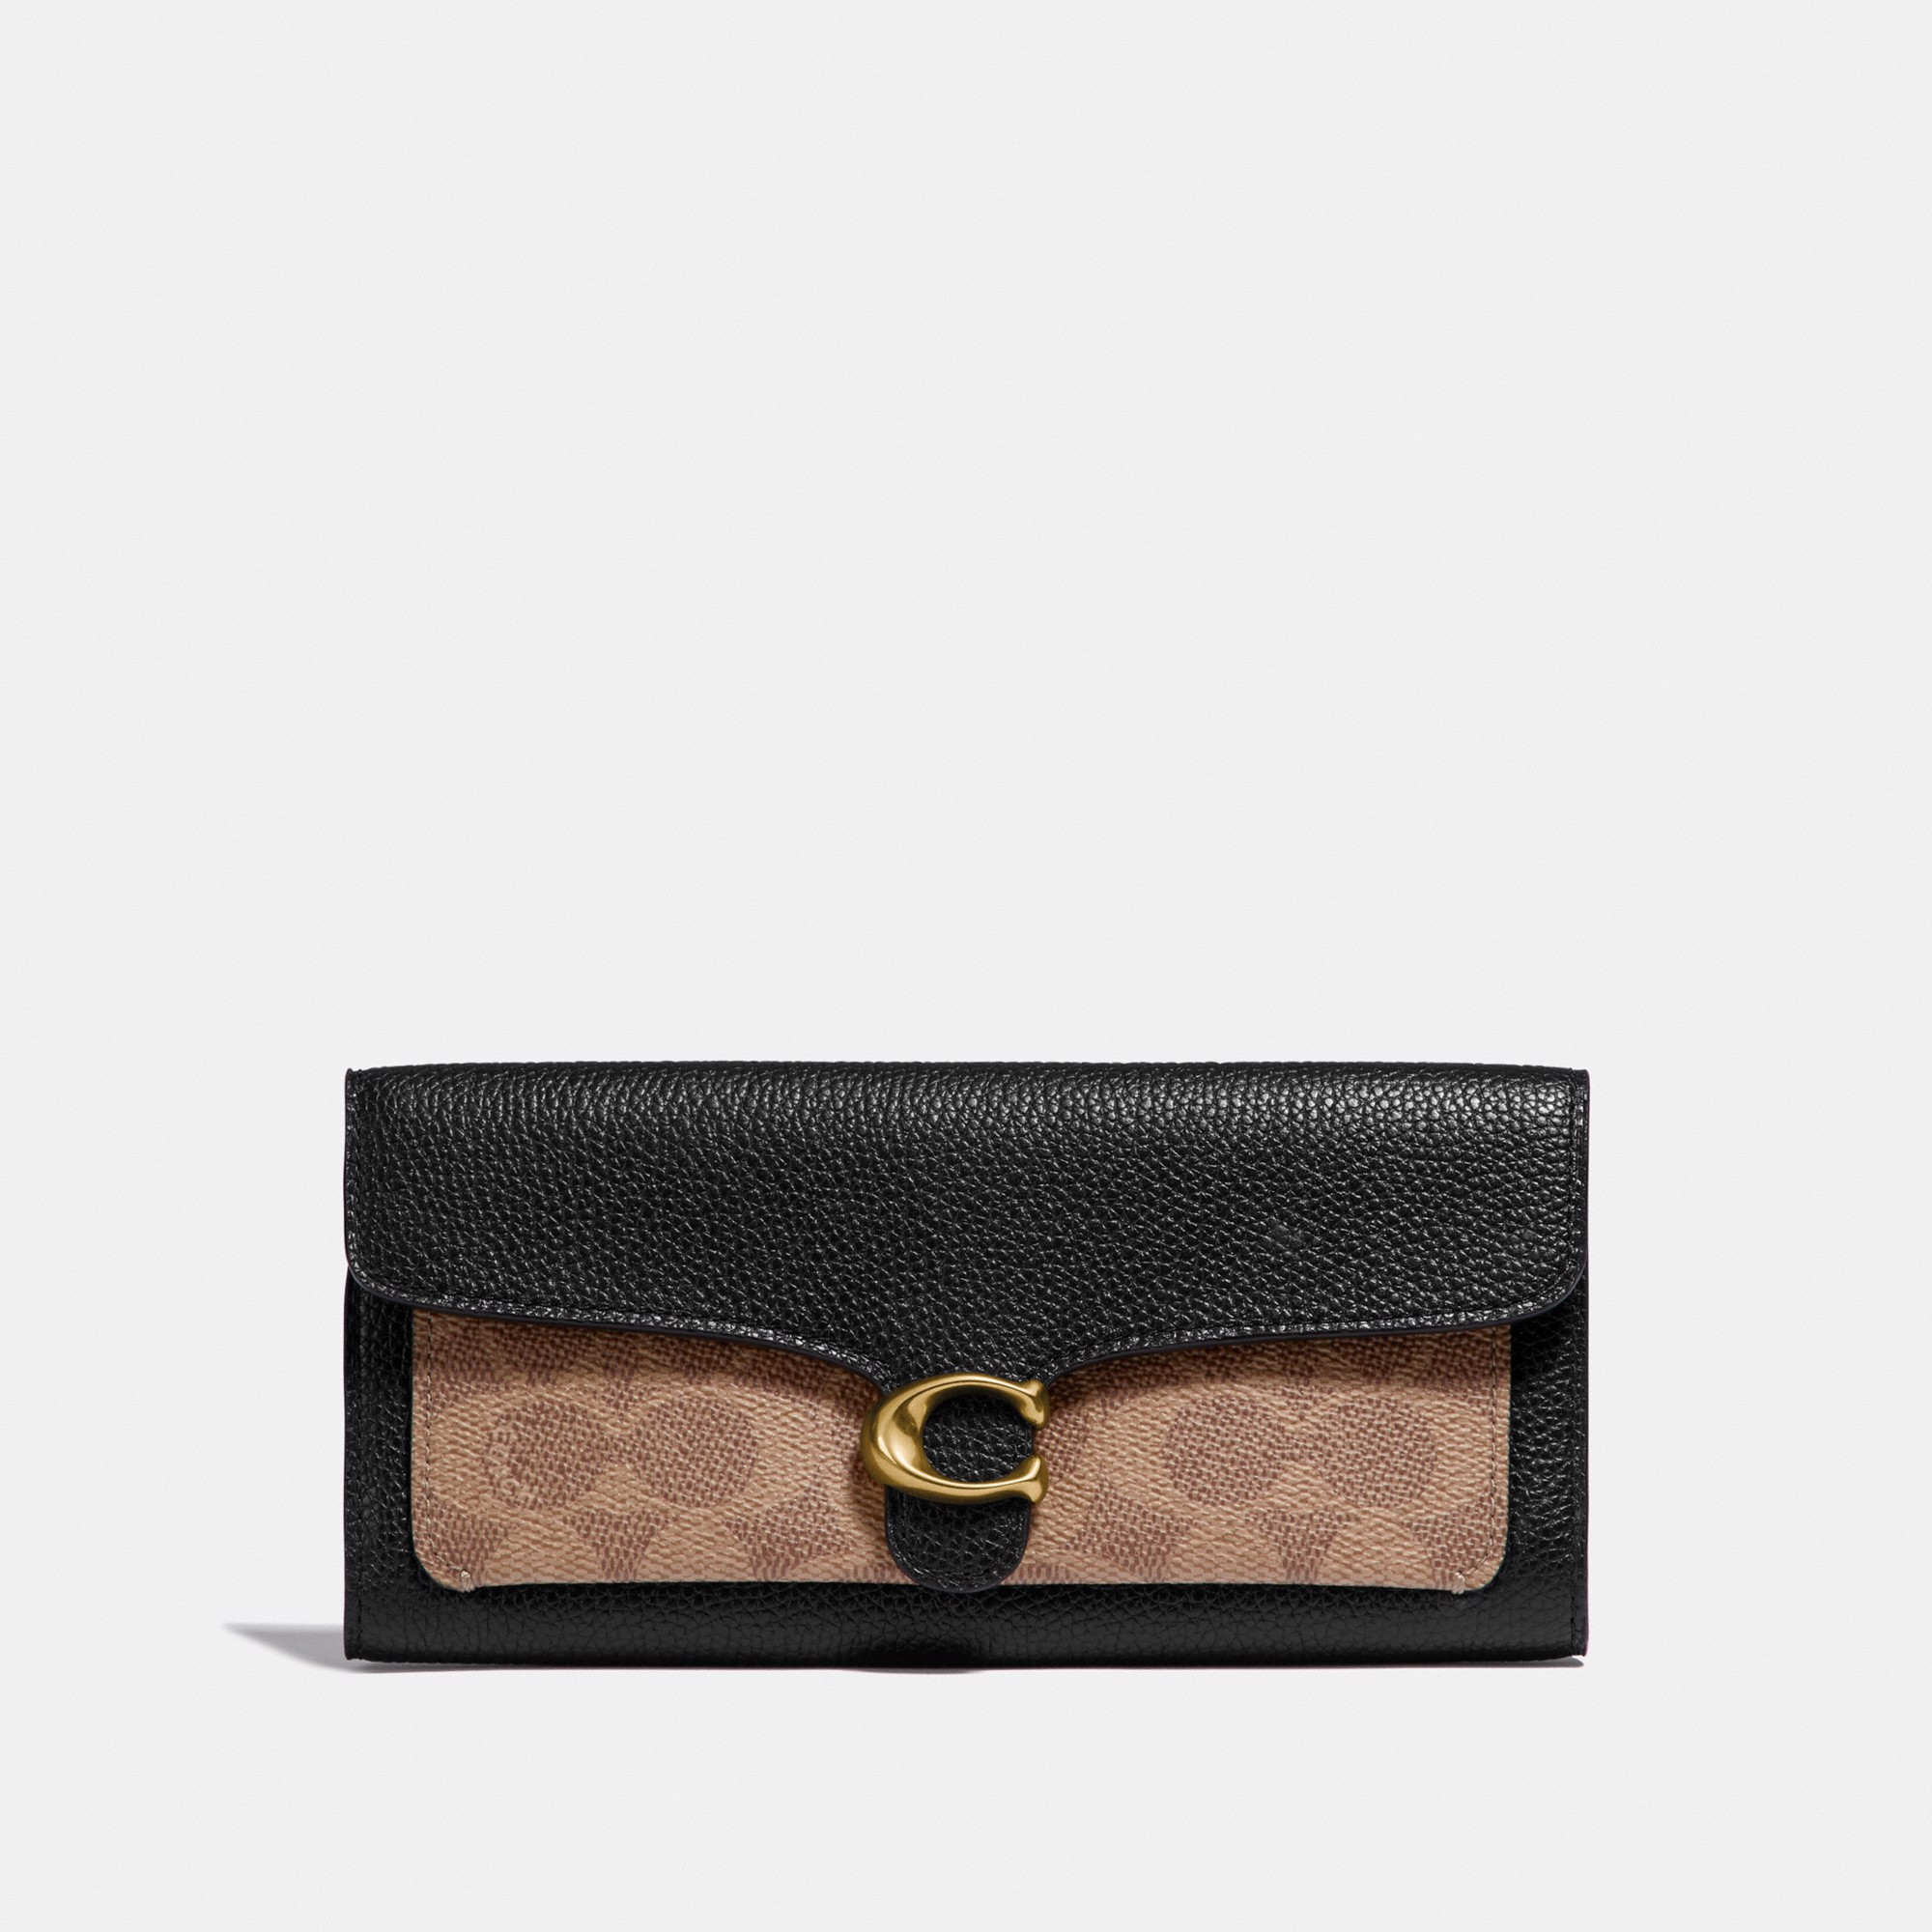 Coach Tabby Long Wallet In Colorblock Signature Canvas - Black